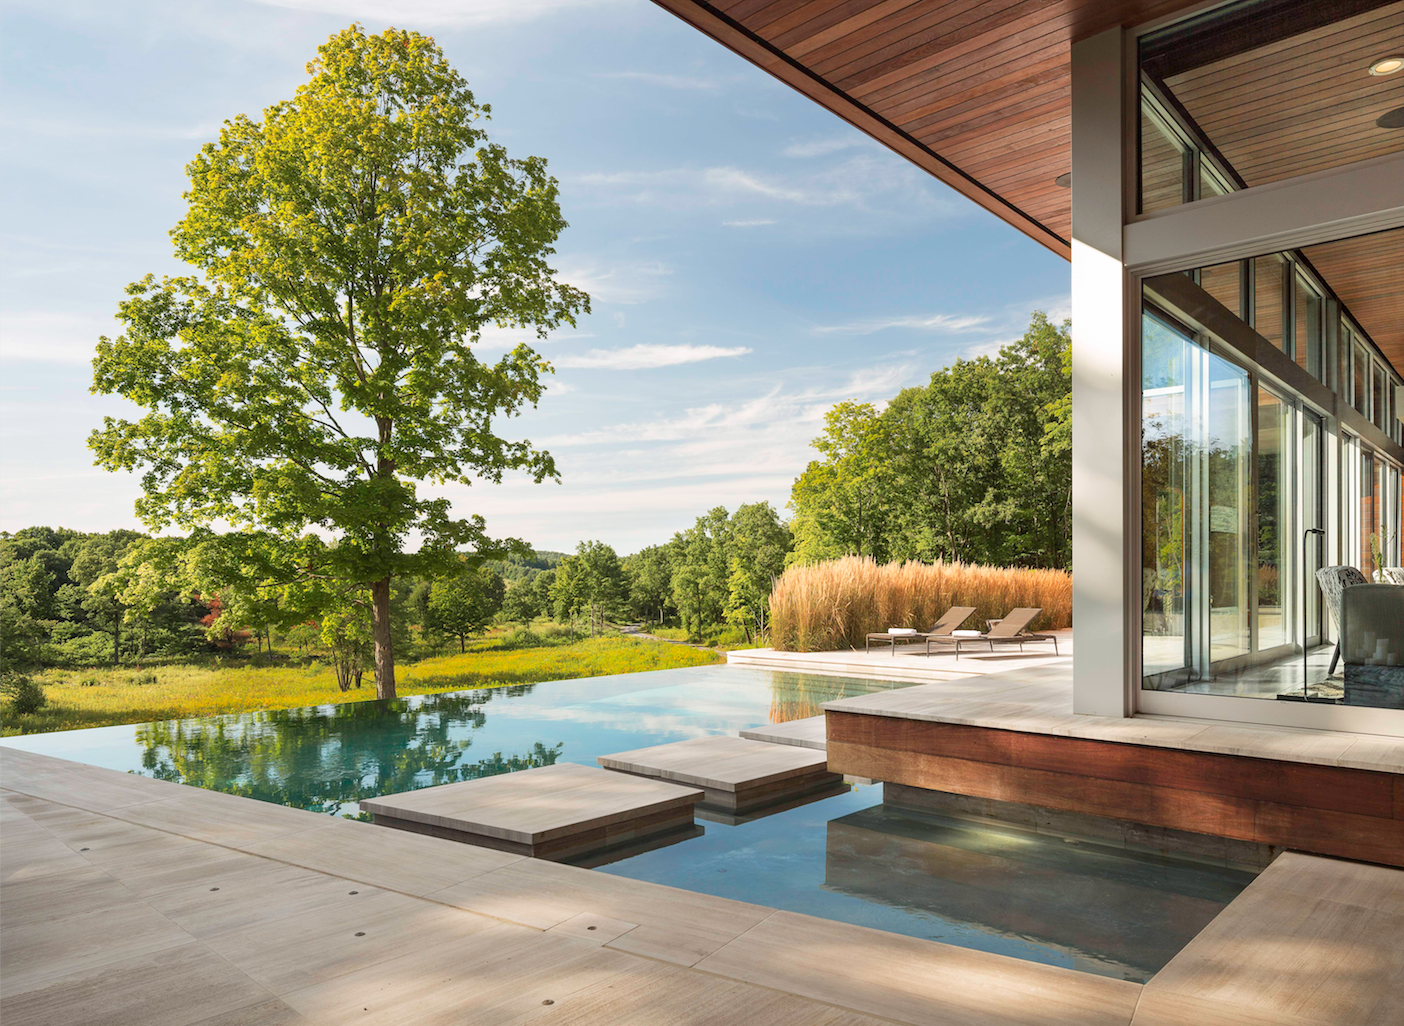 Outdoor, Grass, Infinity Pools, Tubs, Shower, Trees, Swimming Pools, Tubs, Shower, Wood Patio, Porch, Deck, Large Pools, Tubs, Shower, and Large Patio, Porch, Deck  Taghkanic House by Hariri & Hariri Architecture